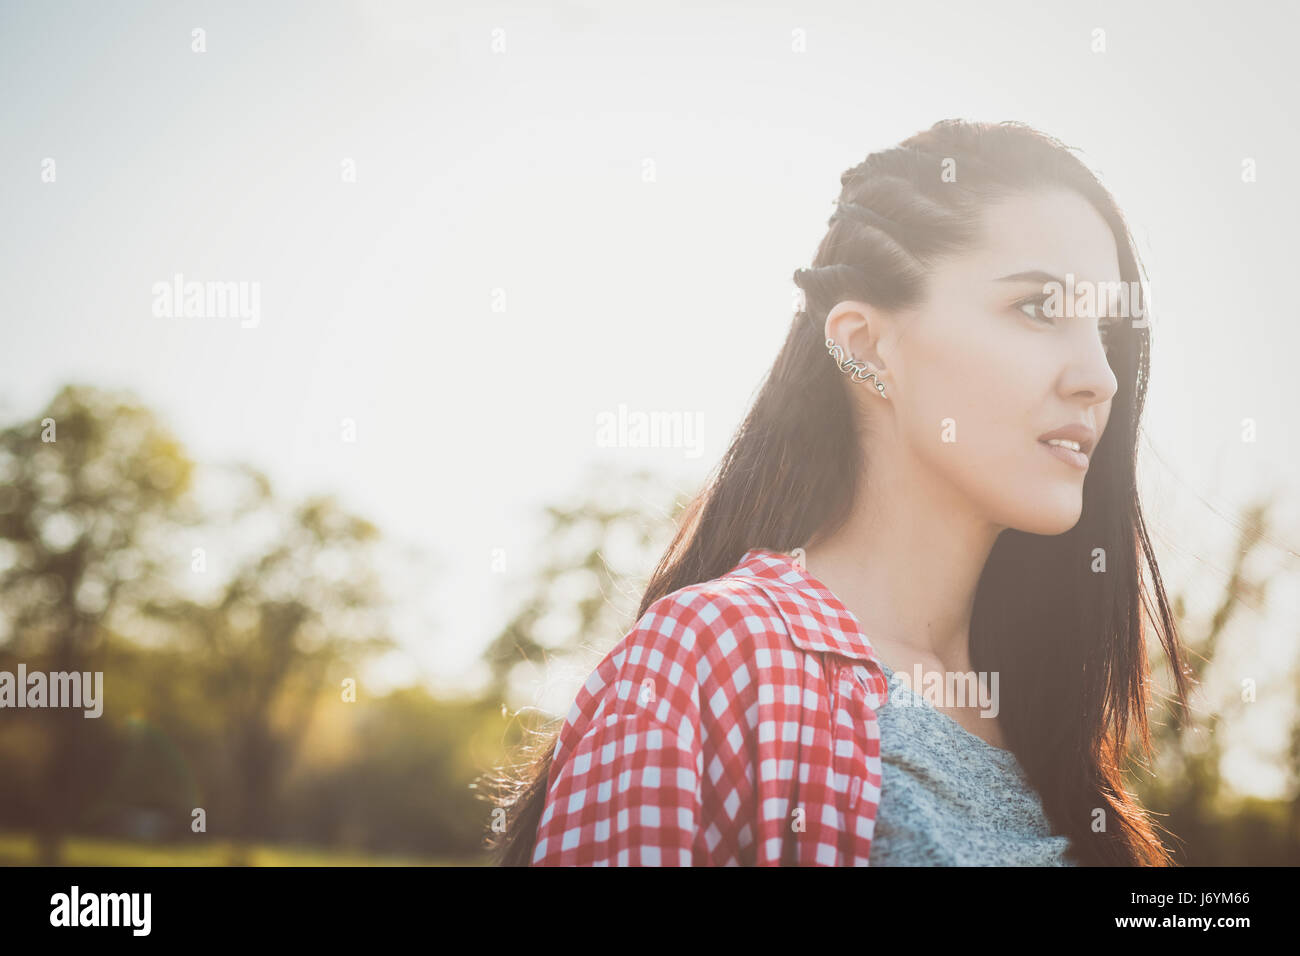 close up portrait of pretty hipster girl outdoors. looking in the distance. concept of freedom purposeful teenager - Stock Image